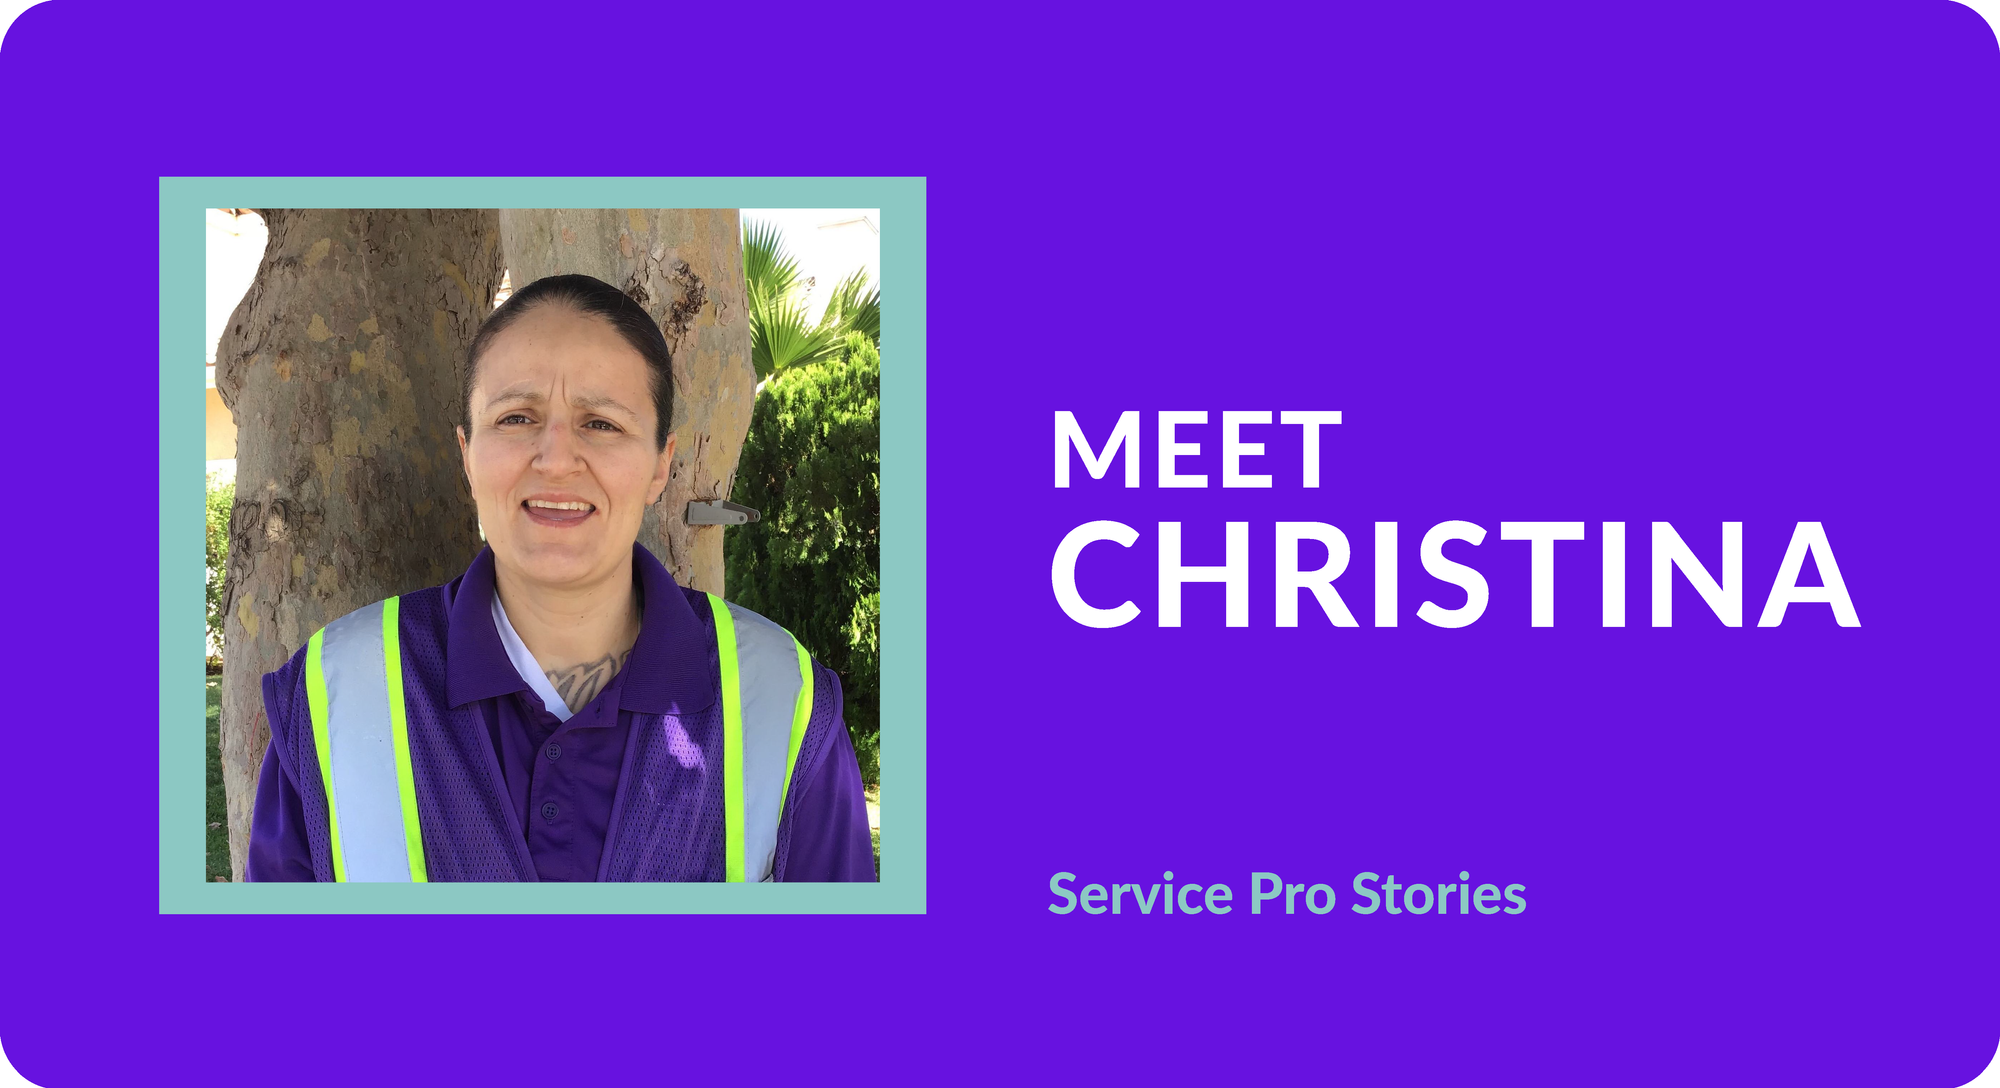 Service Pro Stories: Meet Christina!